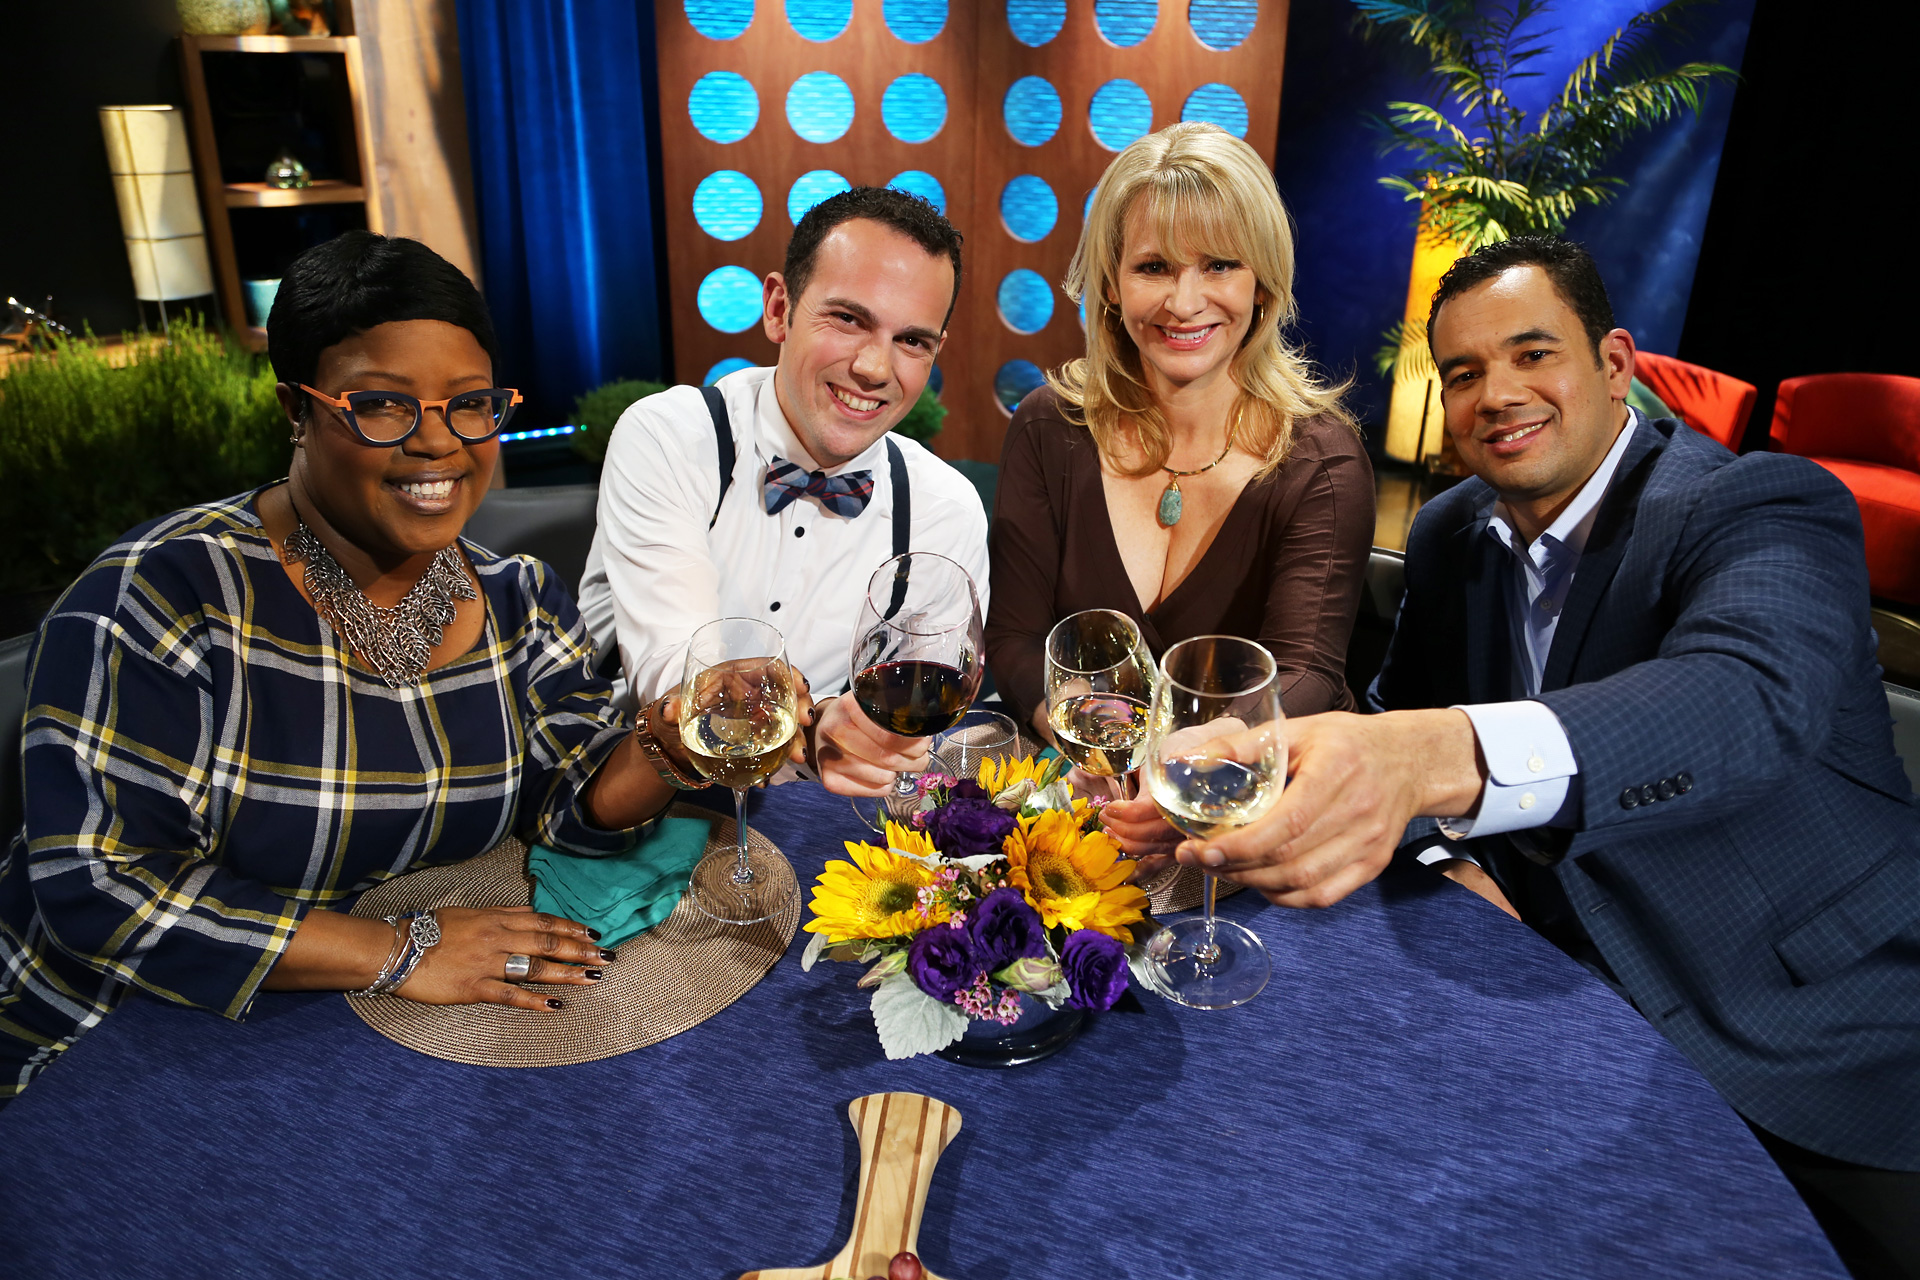 Host Leslie Sbrocco and guests on the set of the episode 2 of season 11.